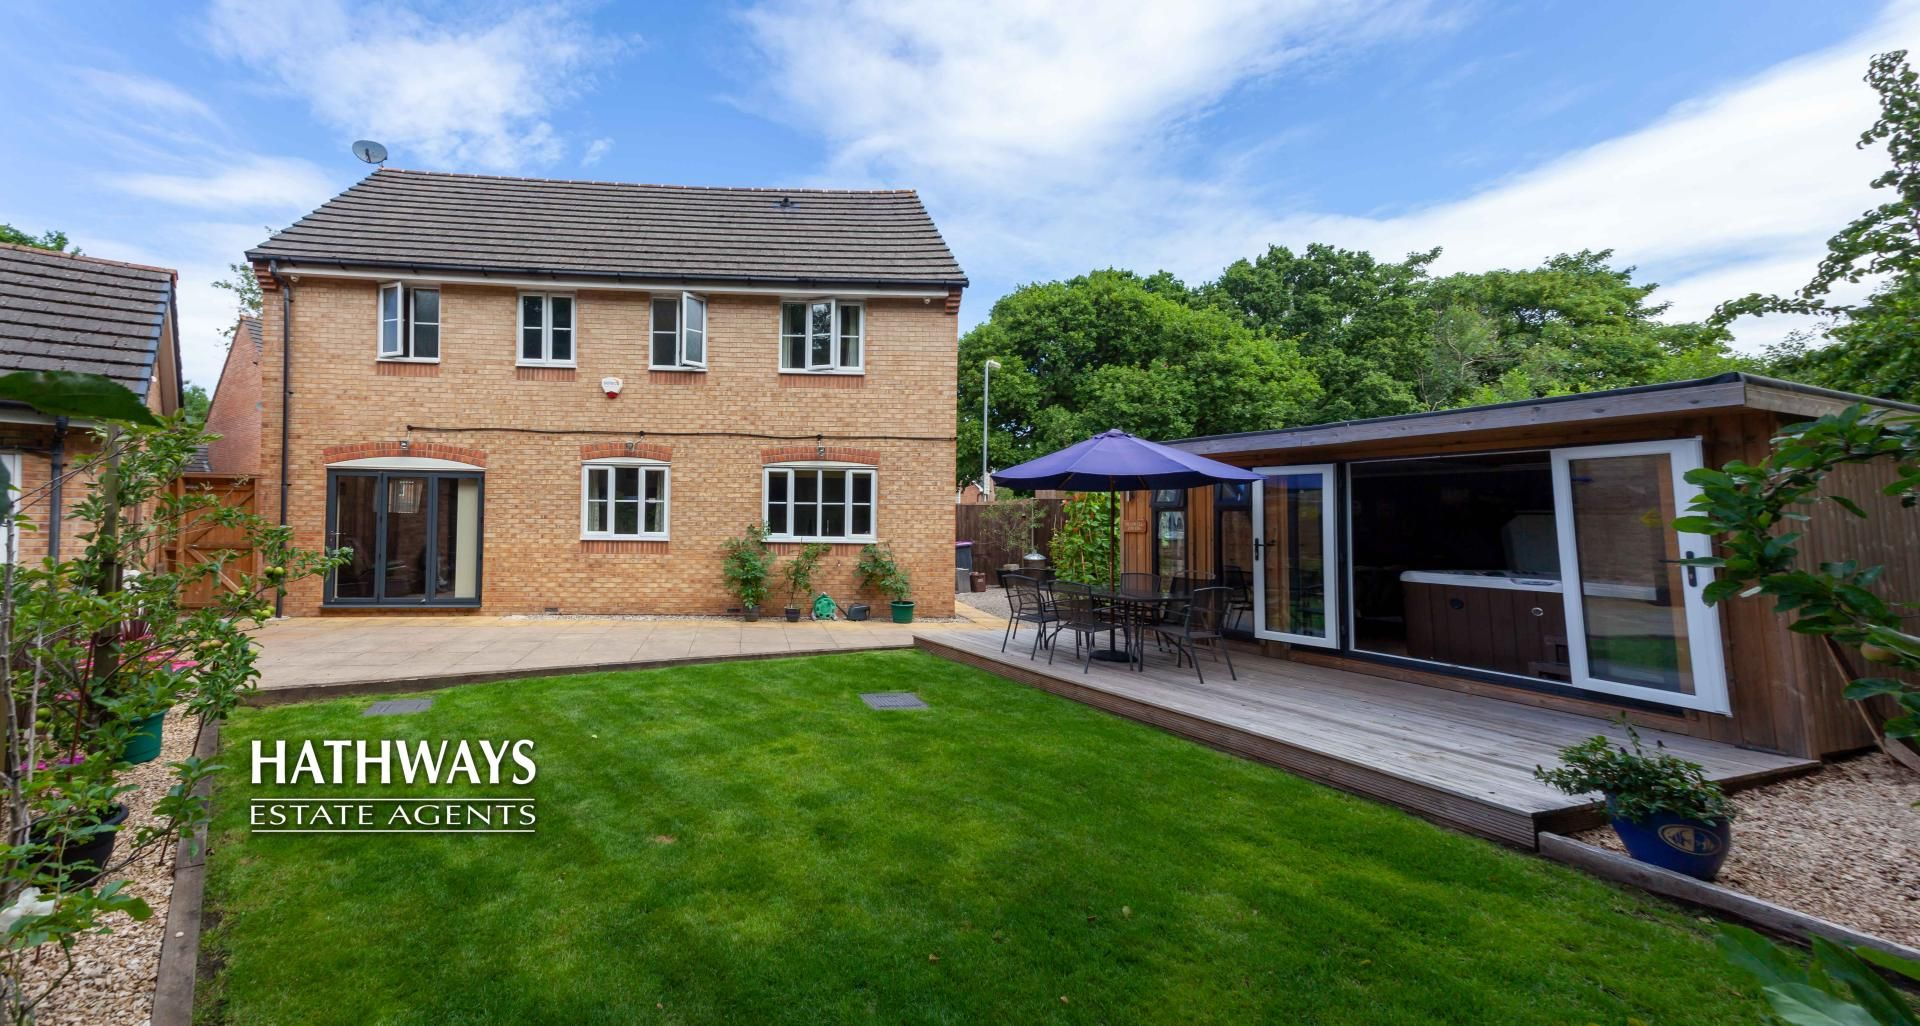 4 bed house for sale in Mill House Court - Property Image 1